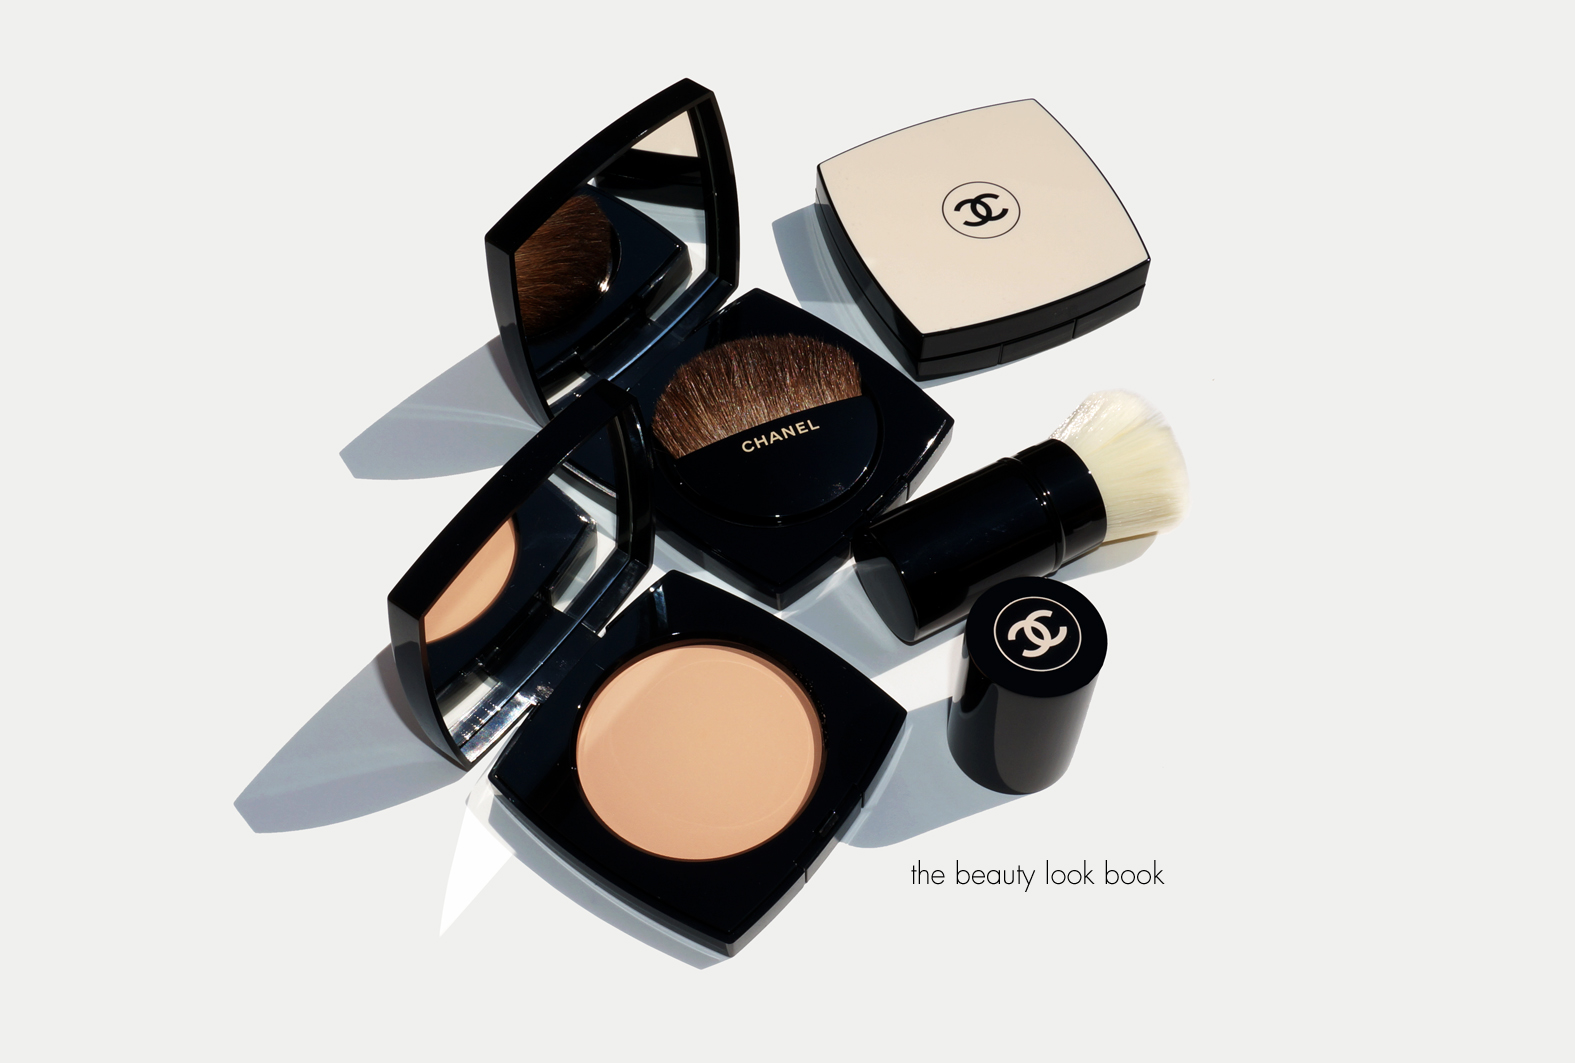 chanel les beiges healthy glow sheer colour spf 15 powders n 20 30 and 40 the beauty look book. Black Bedroom Furniture Sets. Home Design Ideas